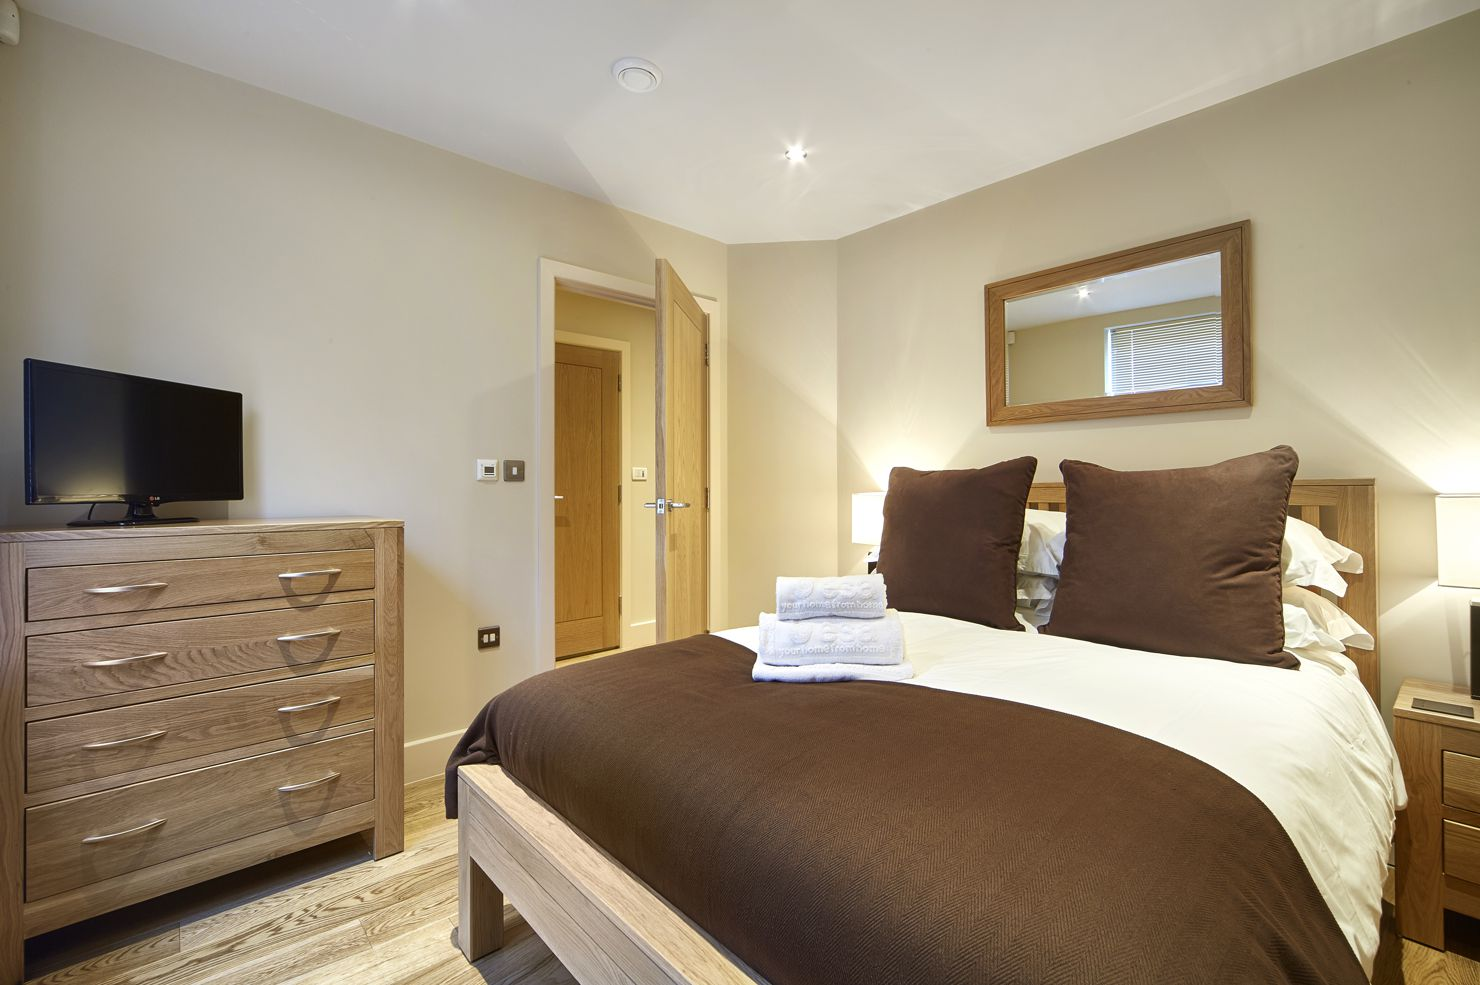 Amazing-Self-Catering-Accommodation-Reading!-Centrally-located-Serviced-Apartments-Reading-and-corporate-accommodation-UK.-Competitive-Rates-·-No-Booking-Fees-·-Free-Wi-Fi-·-Fully-Furnished-·-Fully-equipped-kitchen-·-Weekly-cleaning-included.-Call-Urban-Stay-now:-+44-(0)-208-691-3920